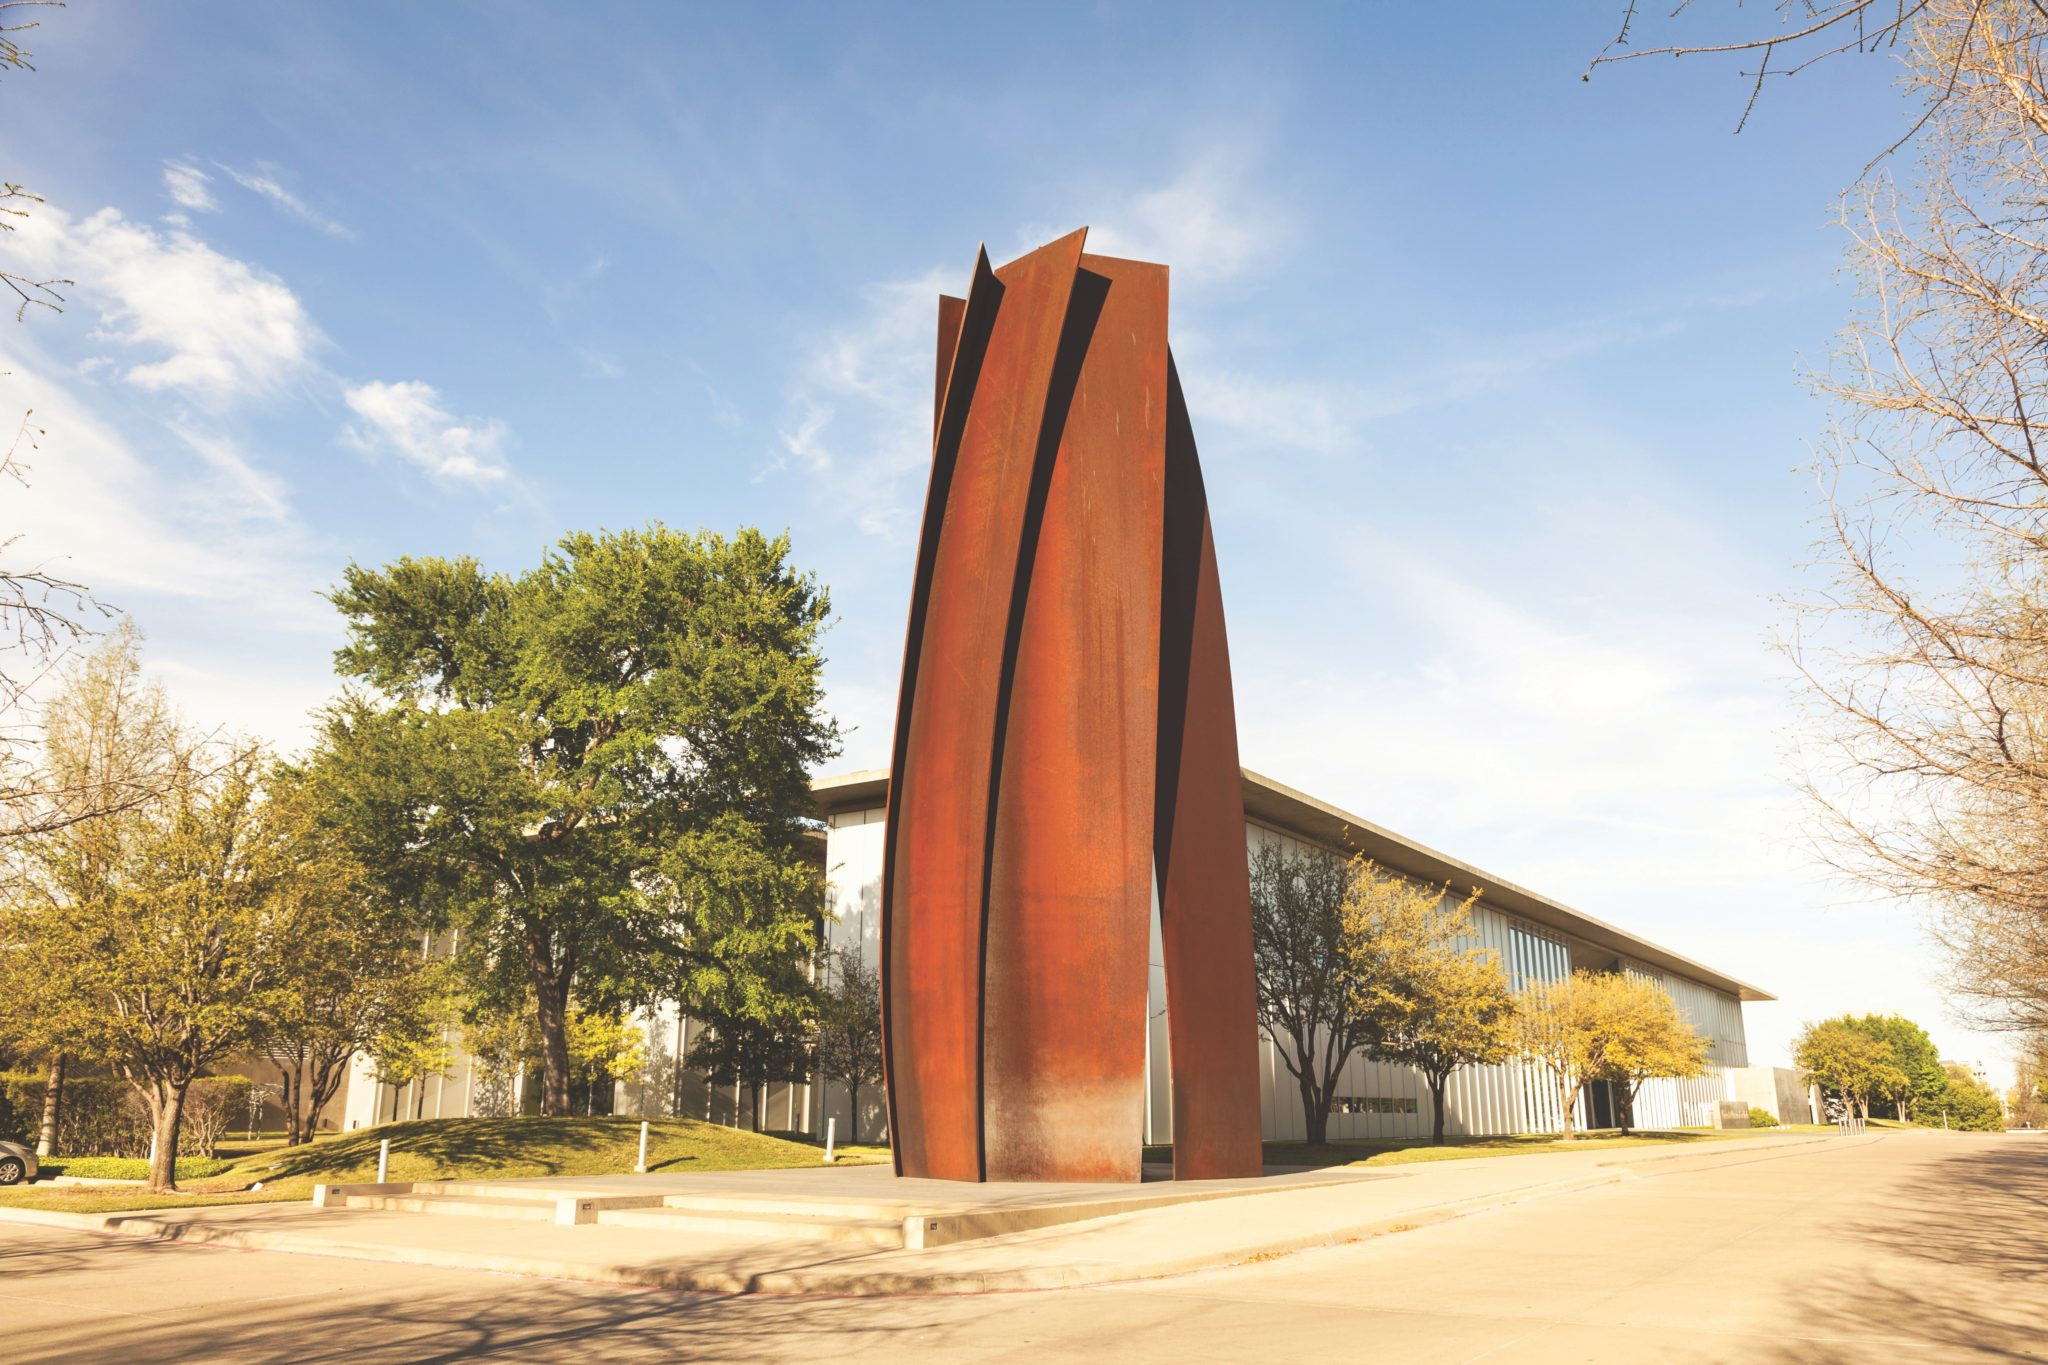 The exterior of the Modern Art Museum of Fort Worth